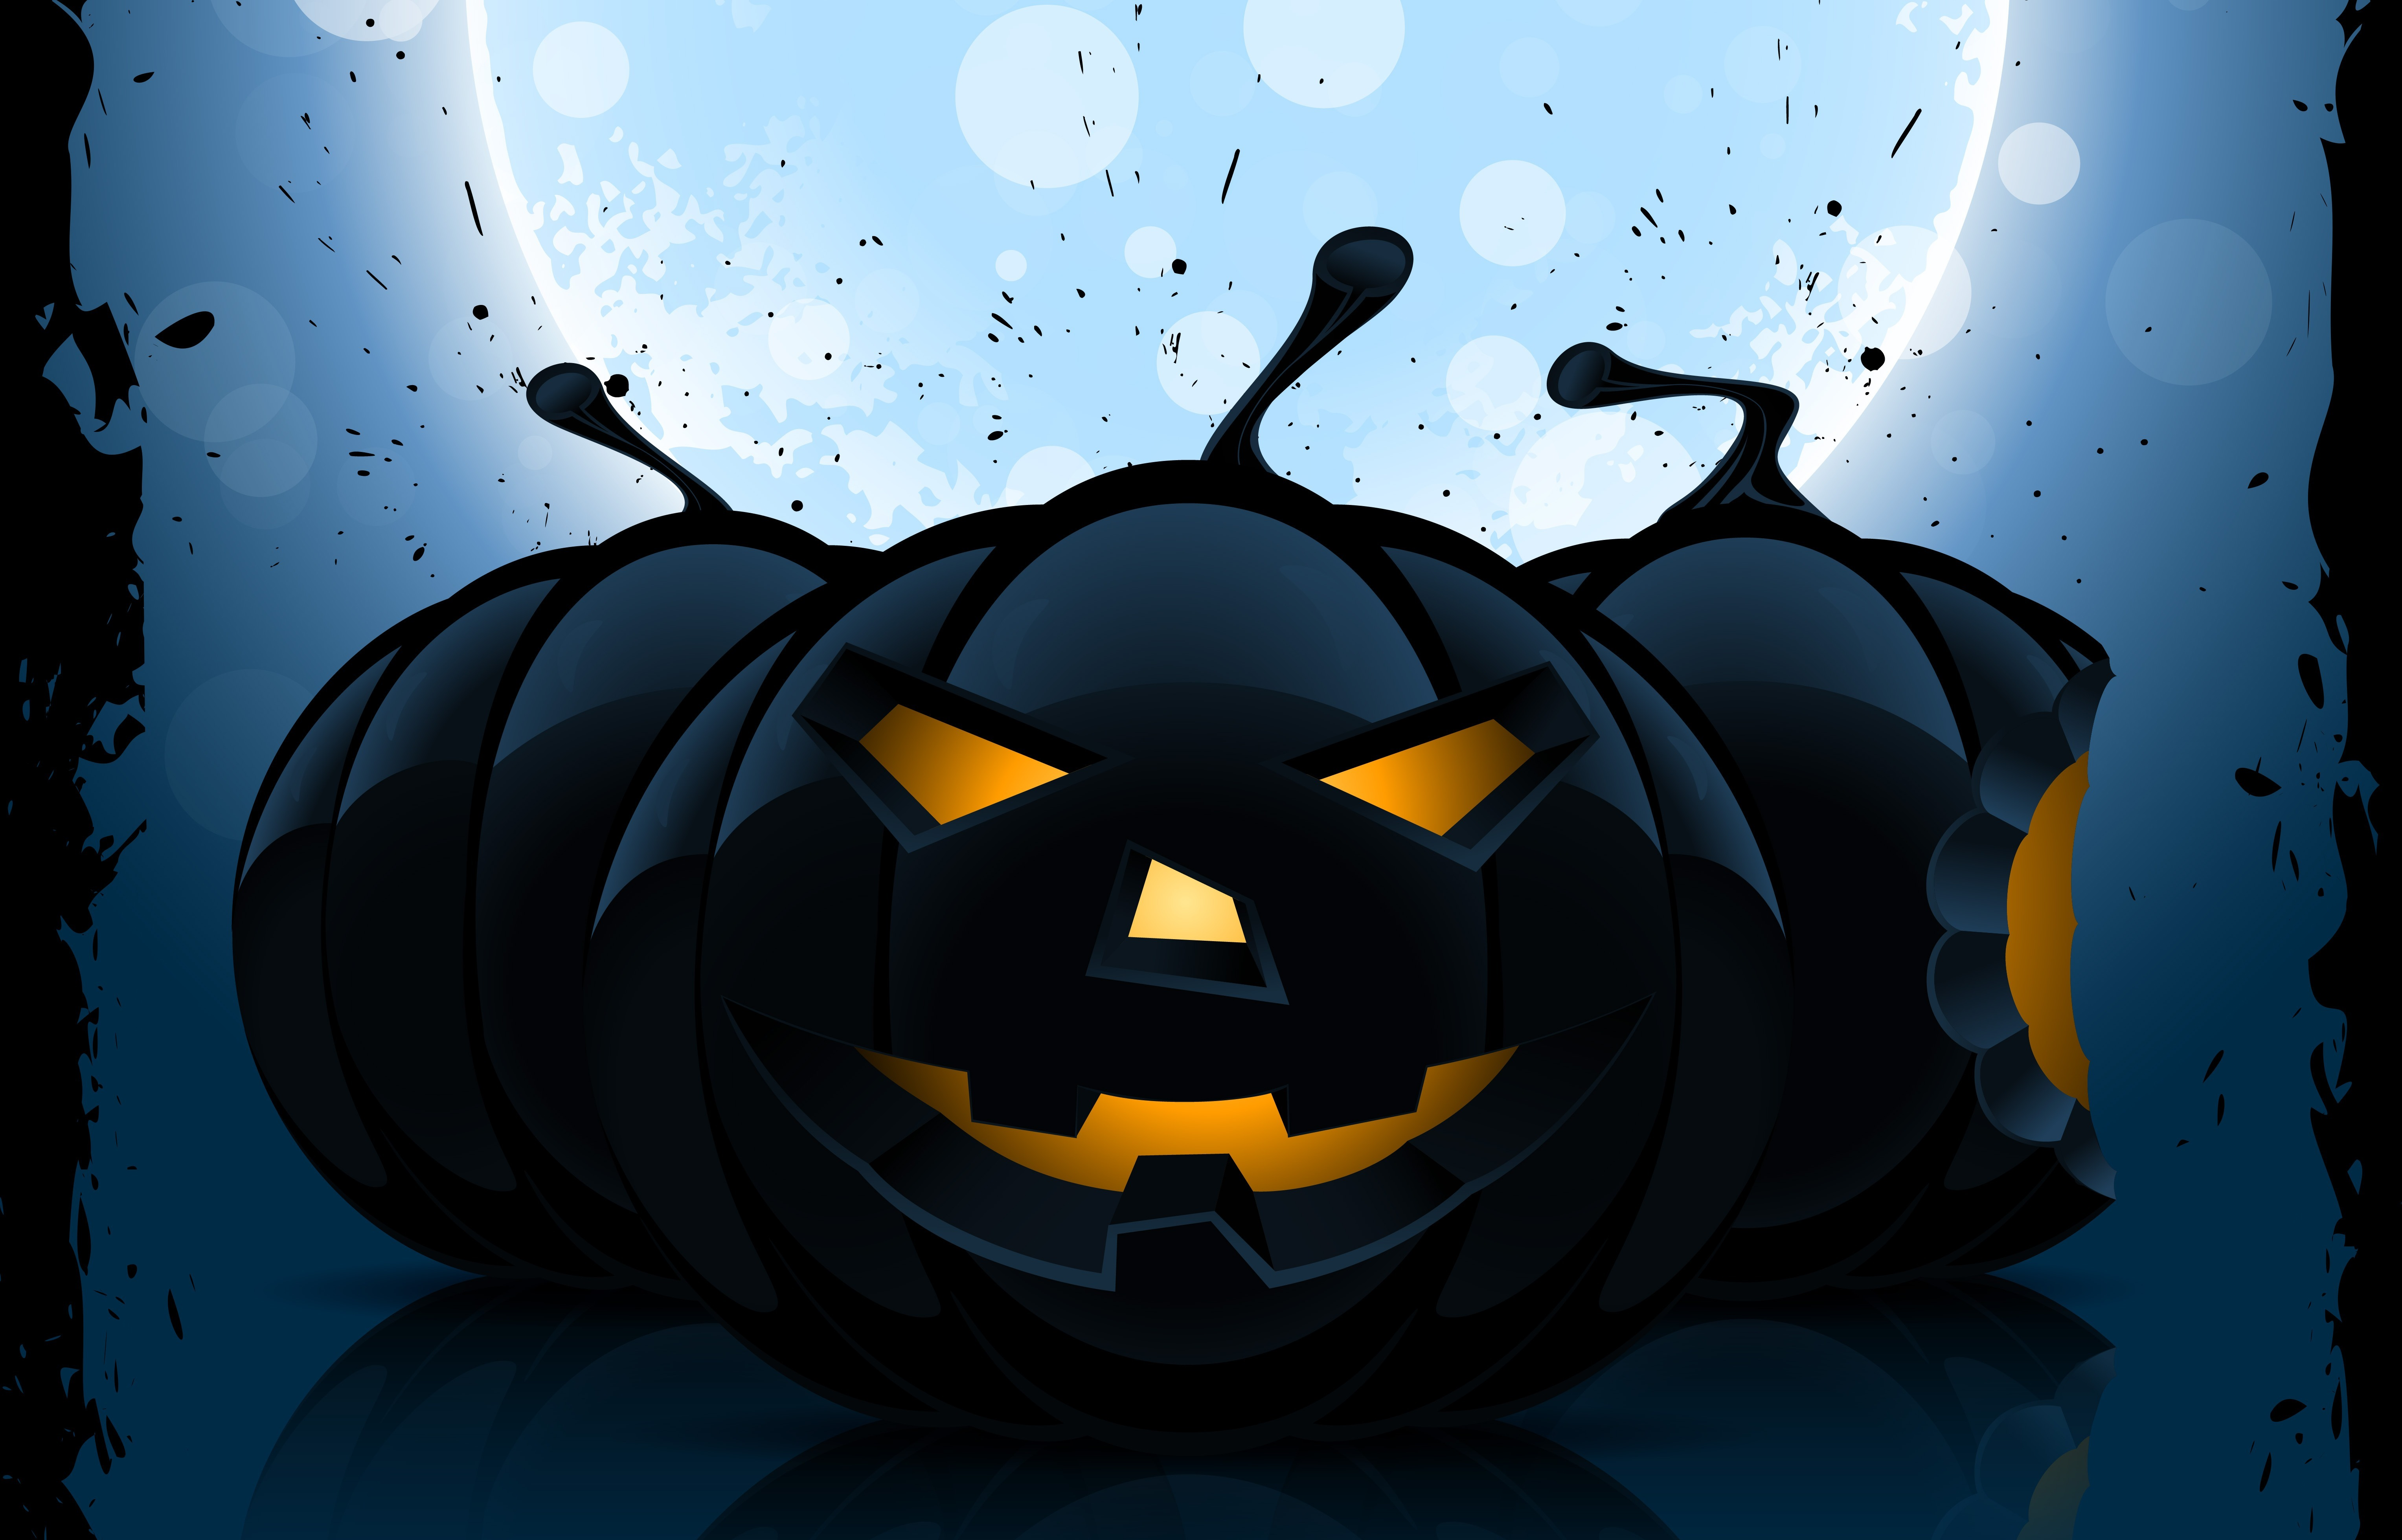 119923 download wallpaper Halloween, Pumpkin, Vector, Dark, Picture, Drawing screensavers and pictures for free